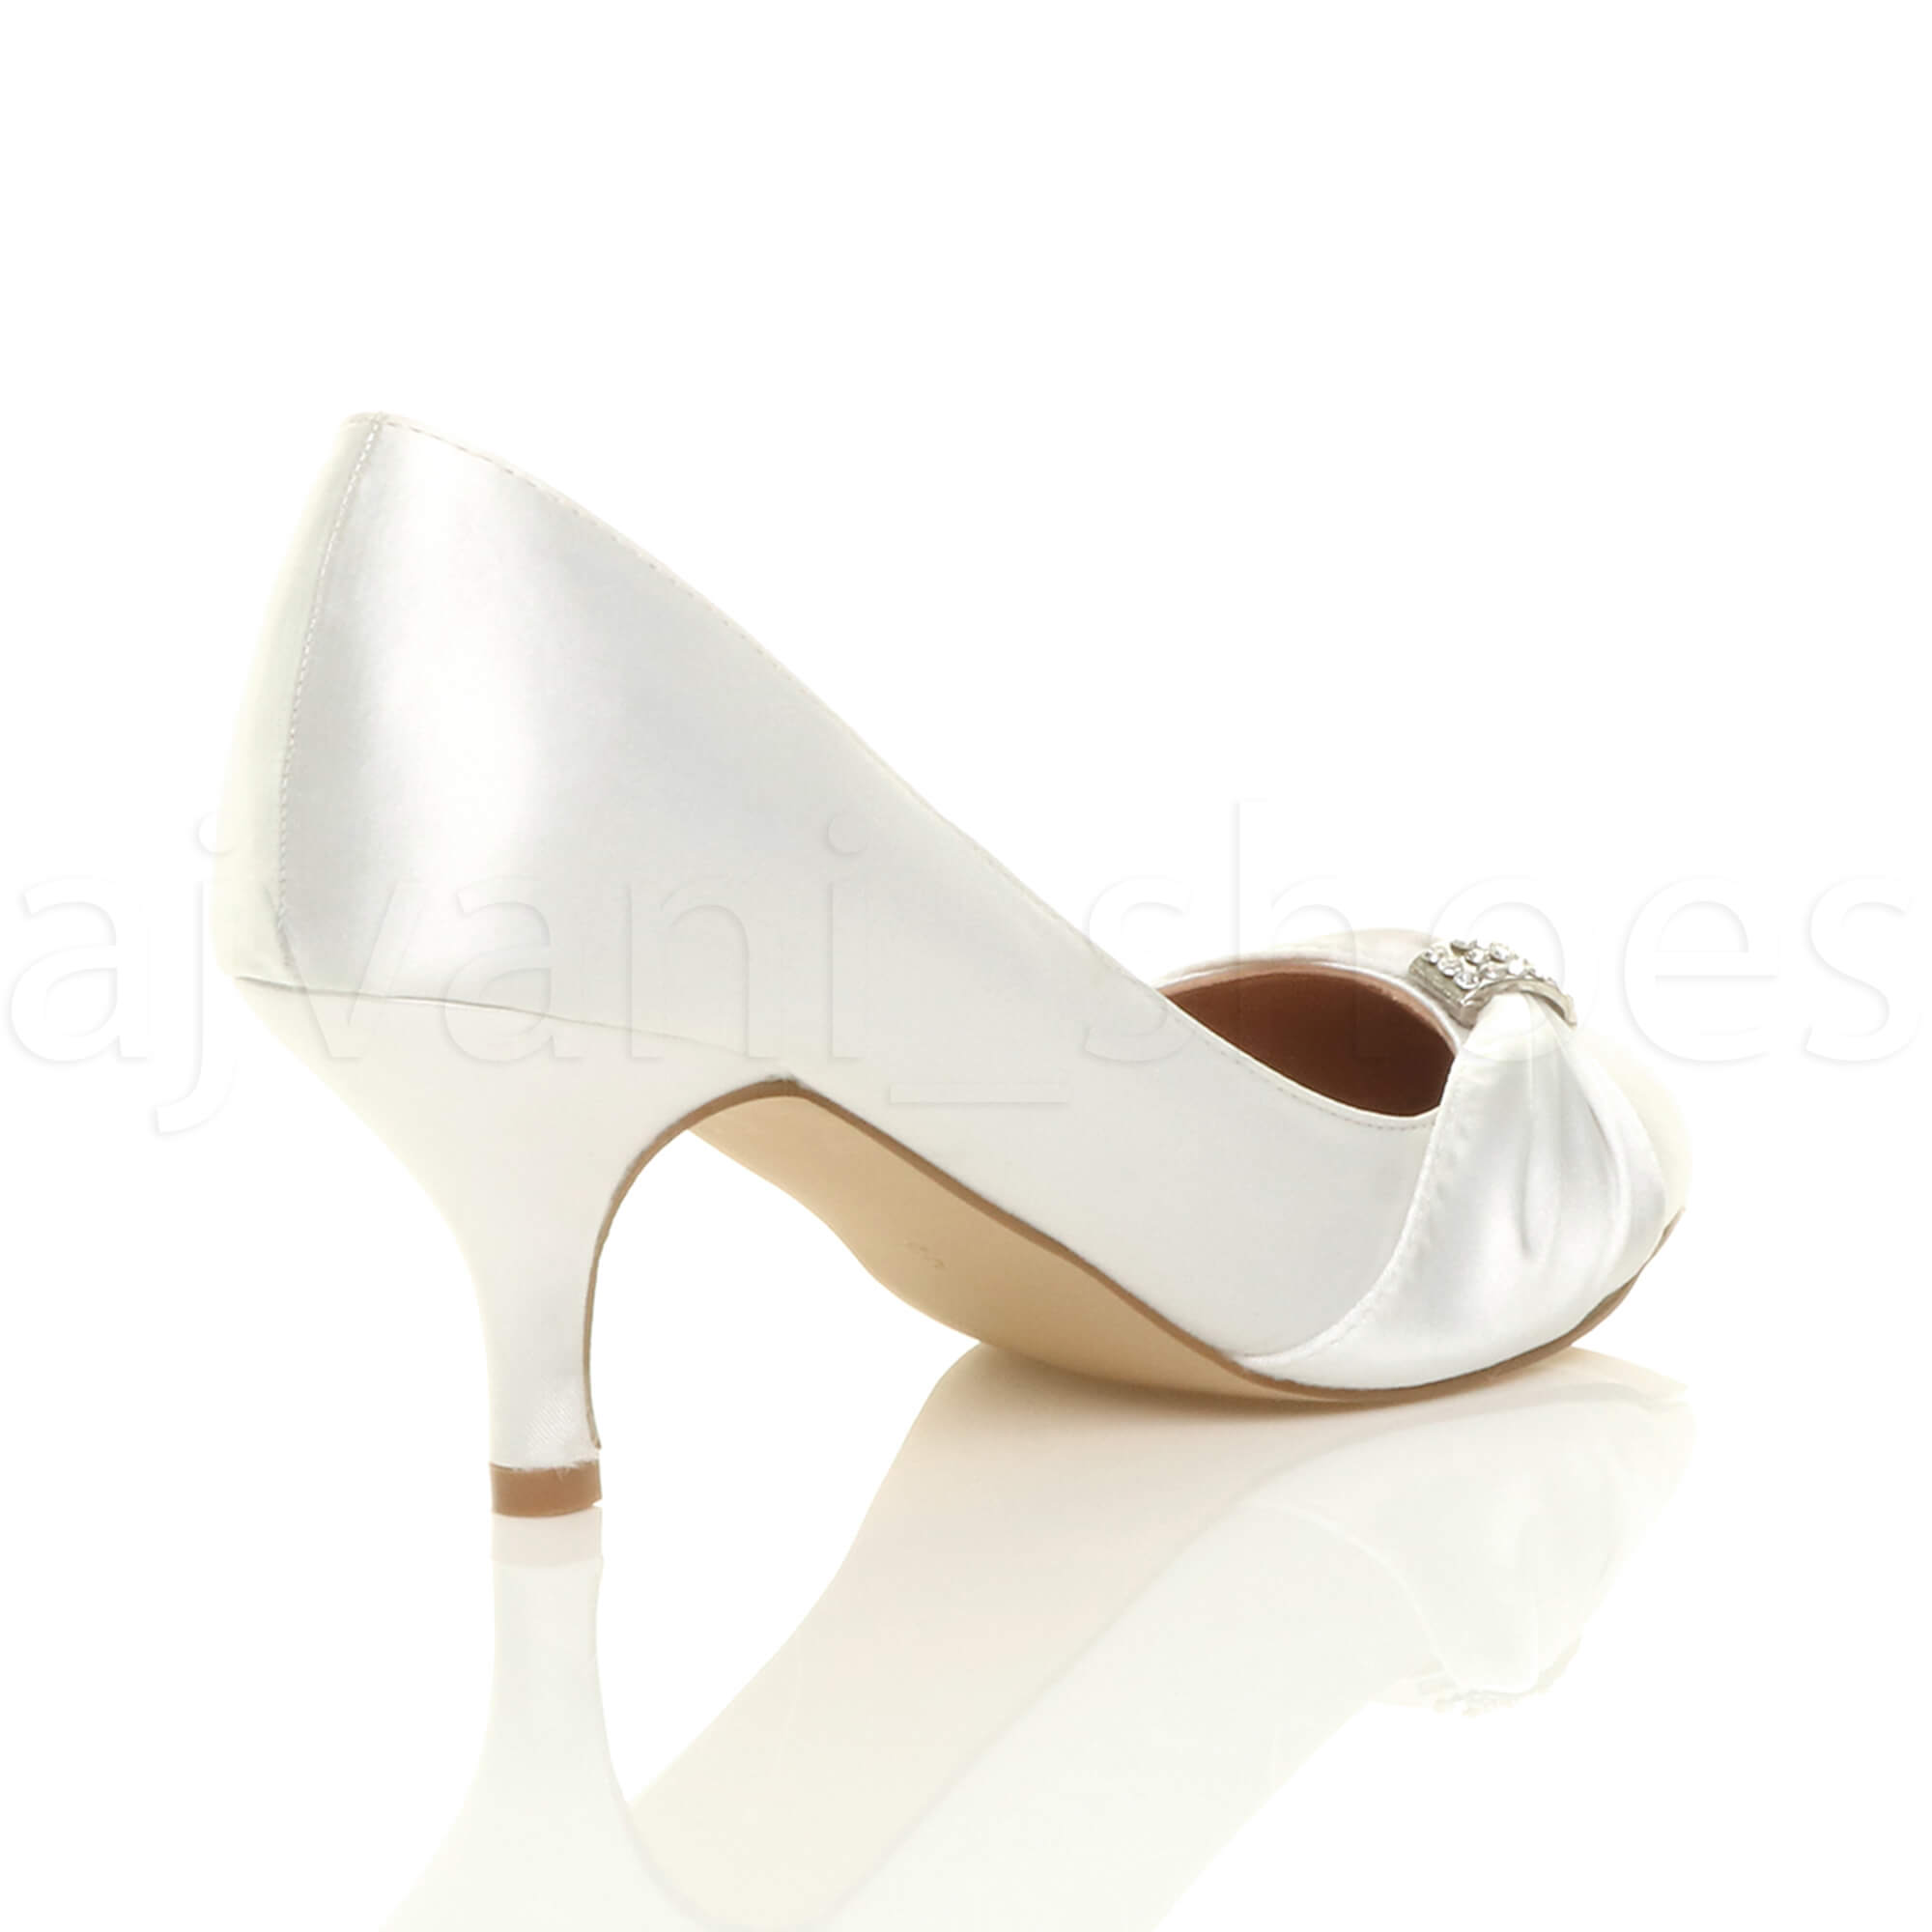 WOMENS-LADIES-MID-HEEL-RUCHED-DIAMANTE-WEDDING-PROM-EVENING-COURT-SHOES-SIZE thumbnail 109